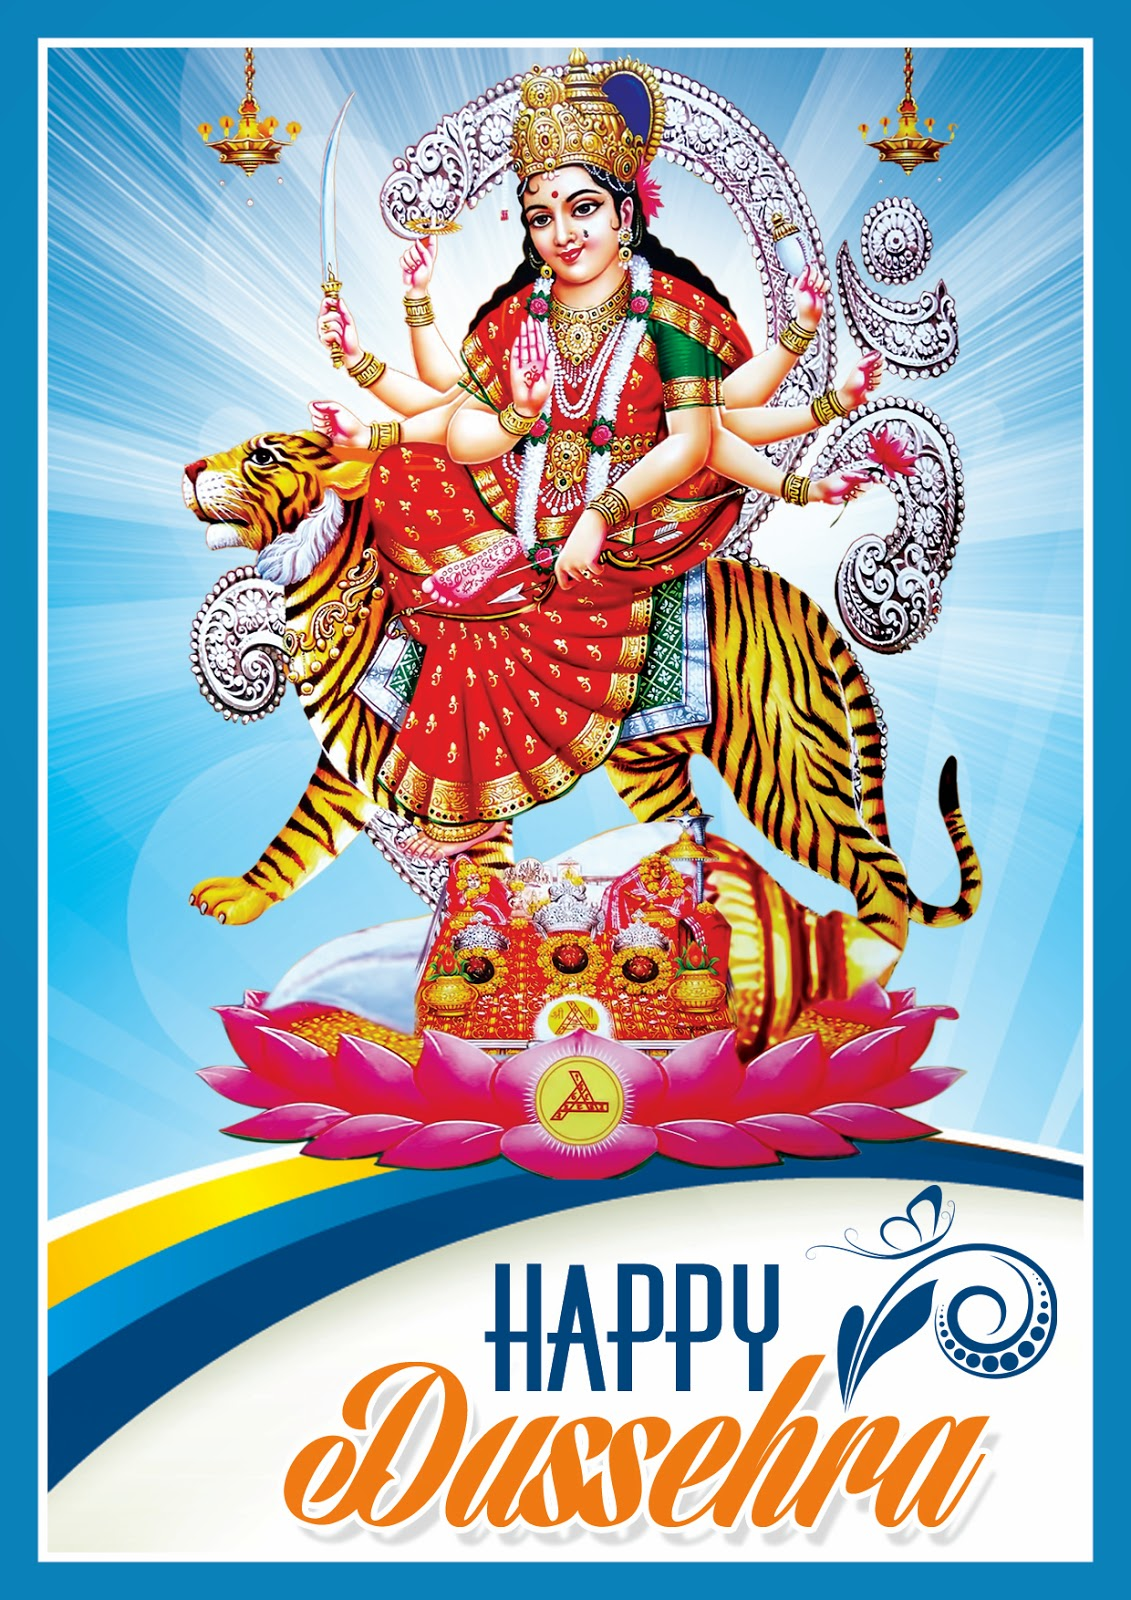 Happy dussehra durga pooja quotes and whishes naveengfx happy dussehra greetings ecards wishes quotes hd wallpapers for facebook m4hsunfo